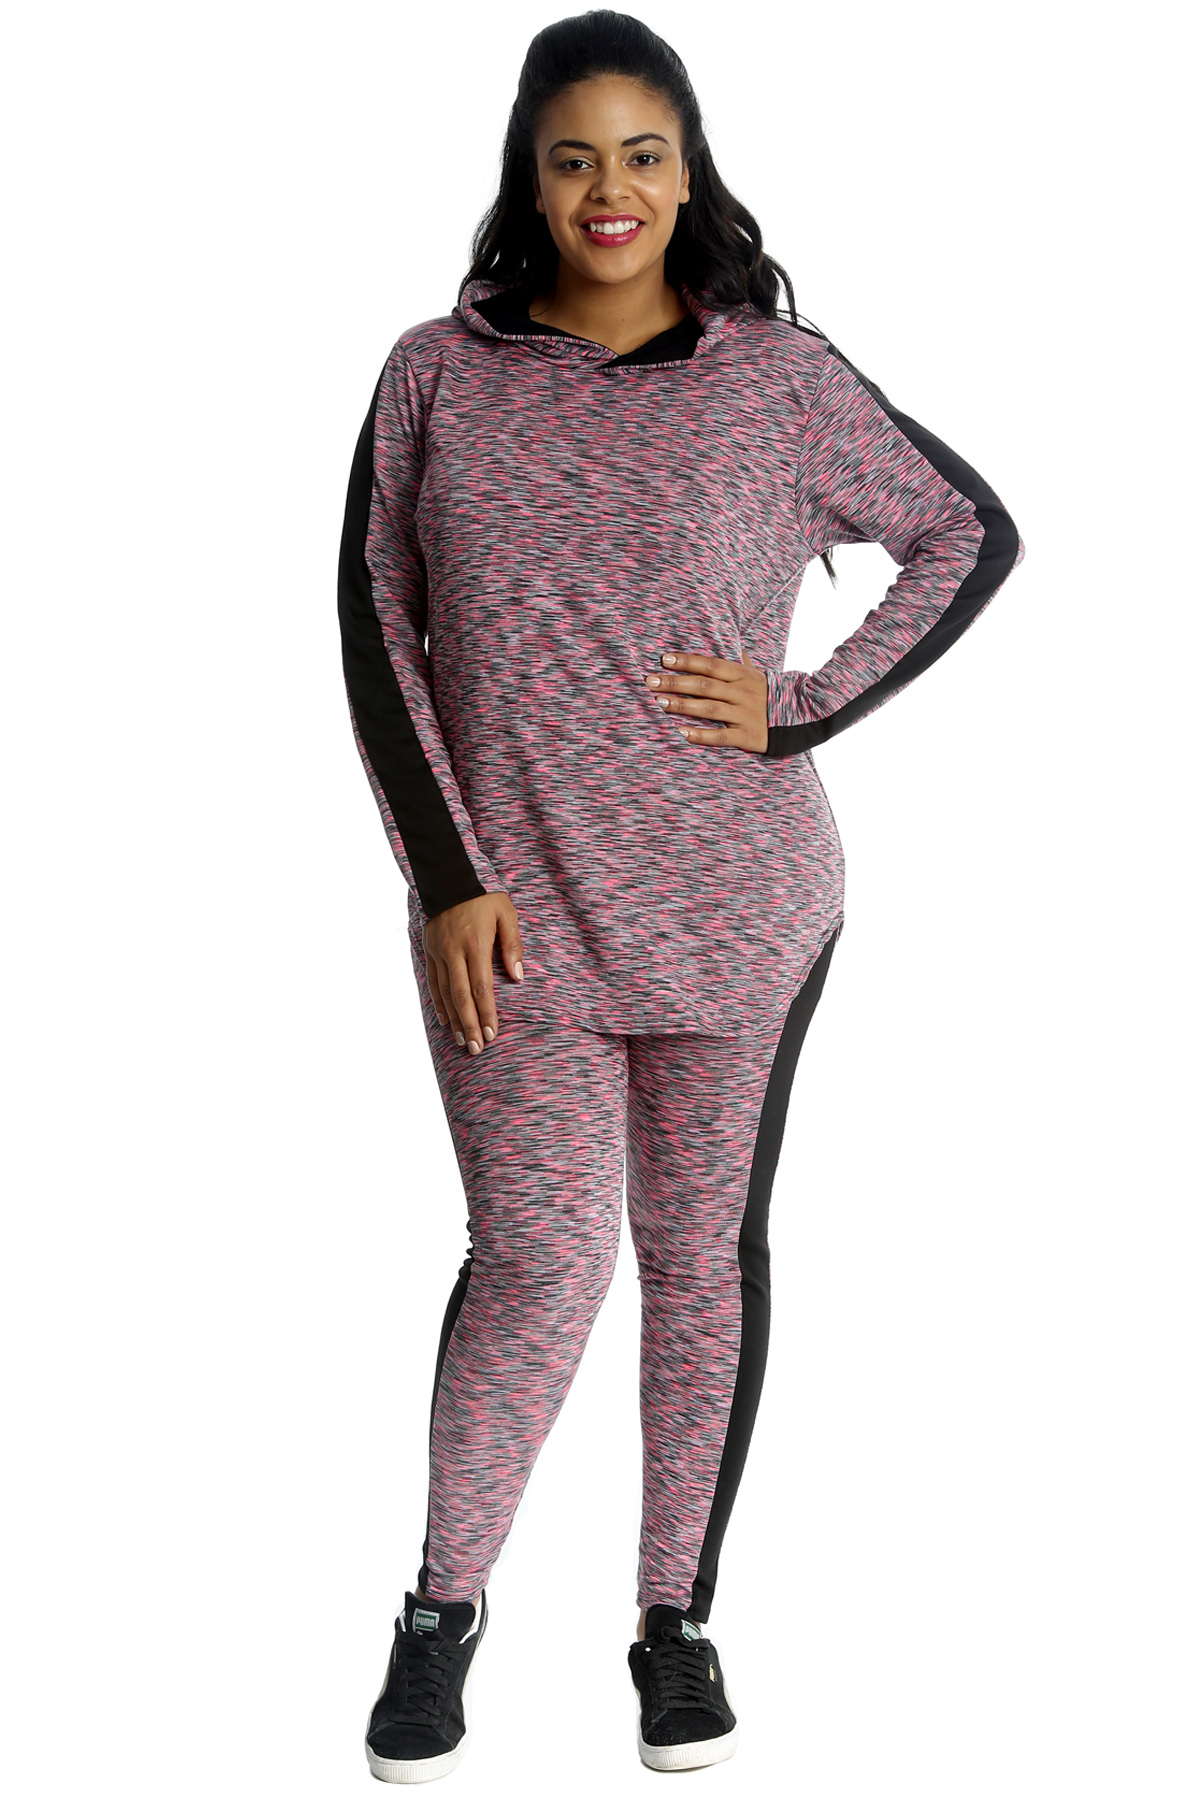 Plus Size Pink Jogging Suit Shop Clothing Shoes Online